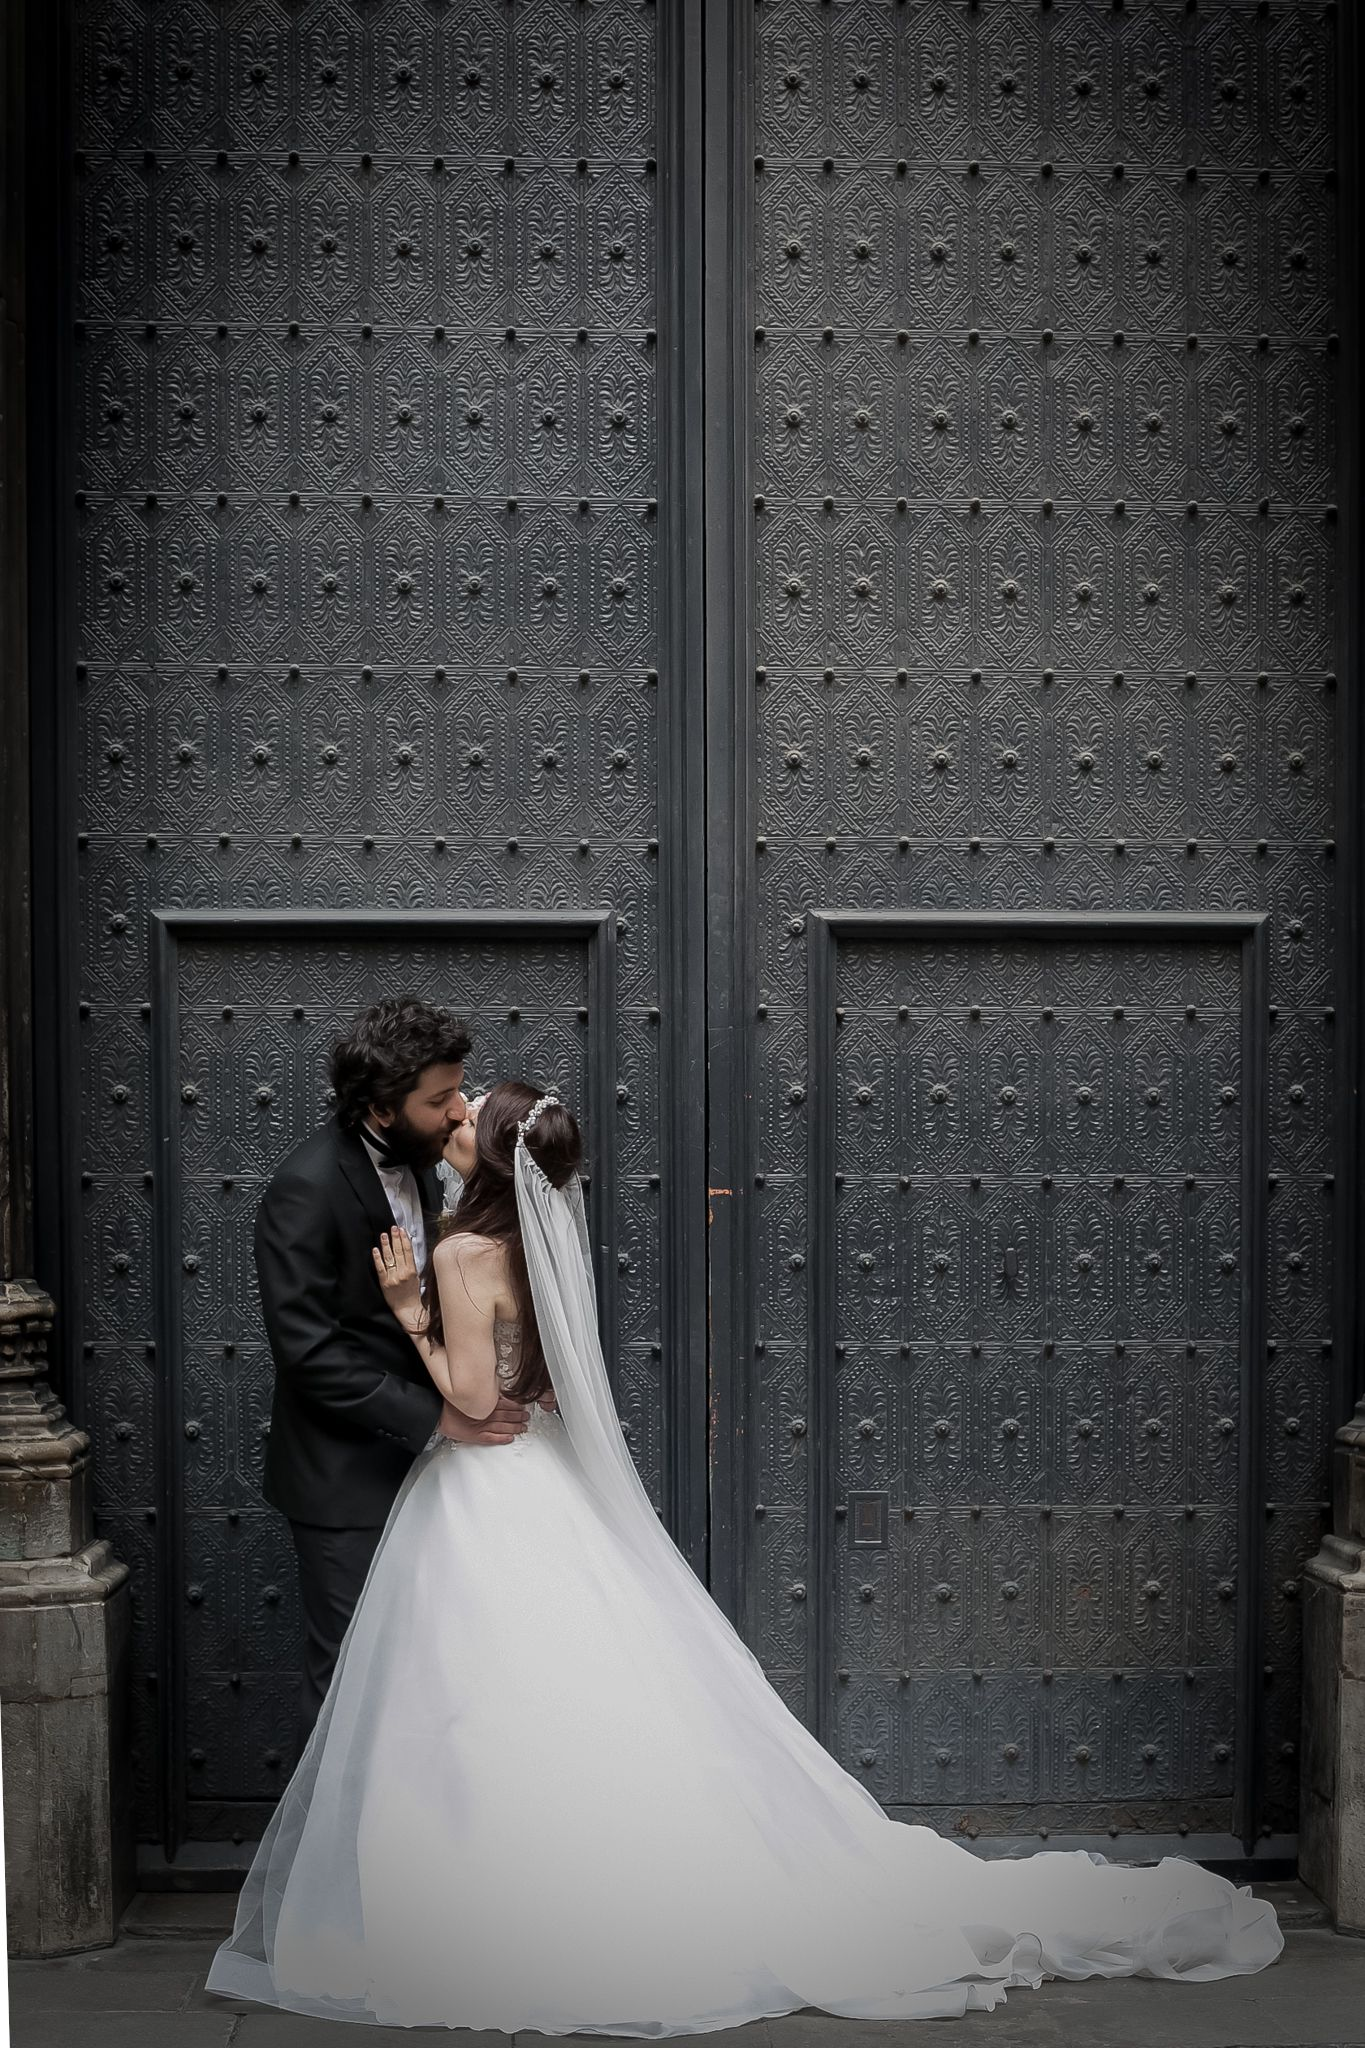 Bride and Groom kiss in front of tall doors